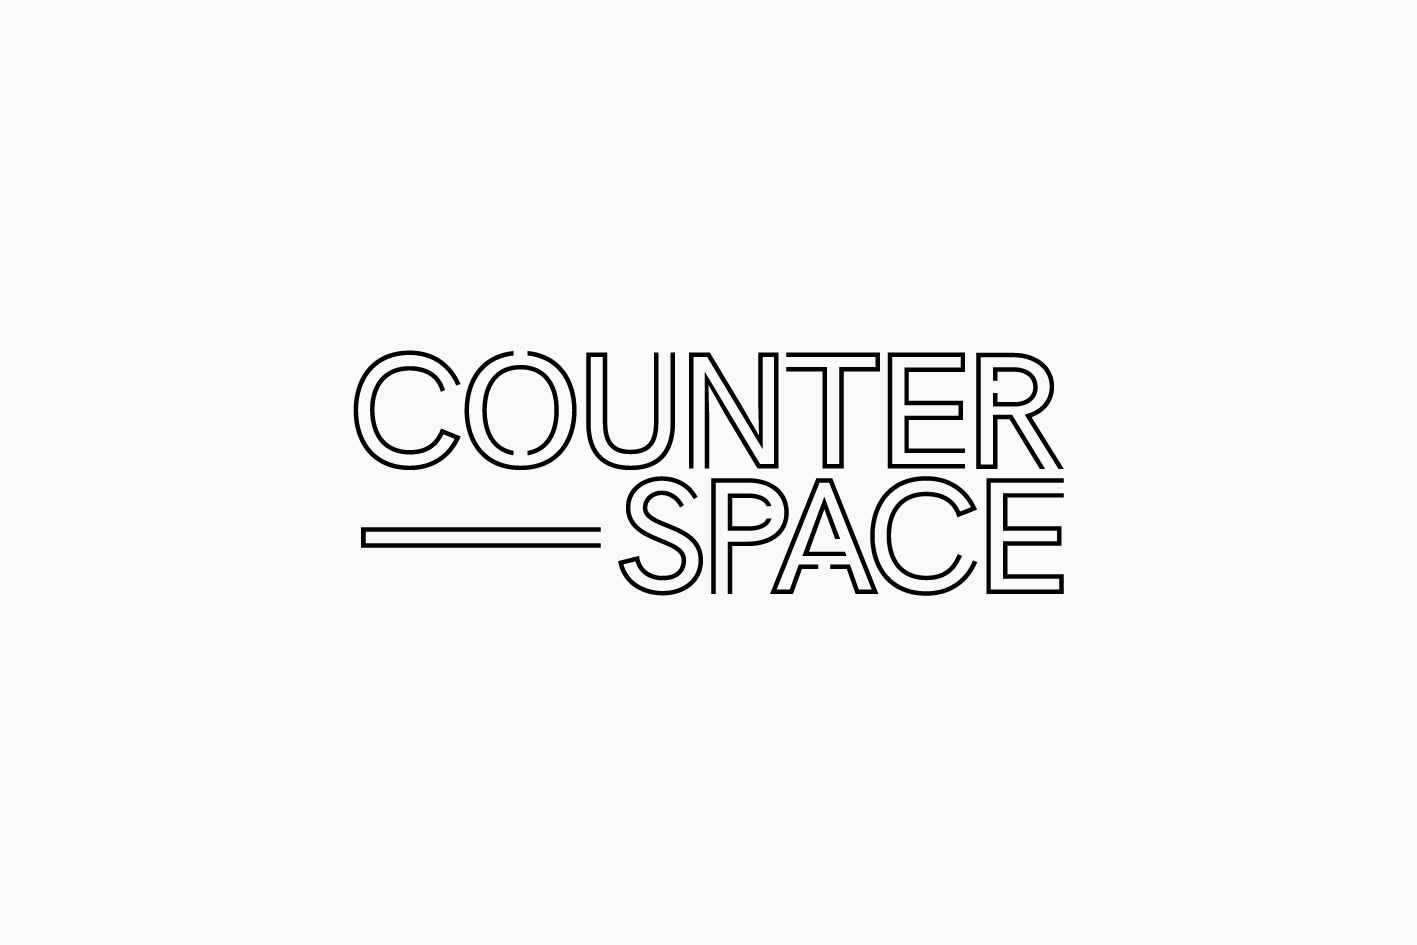 hh_counterspace_01